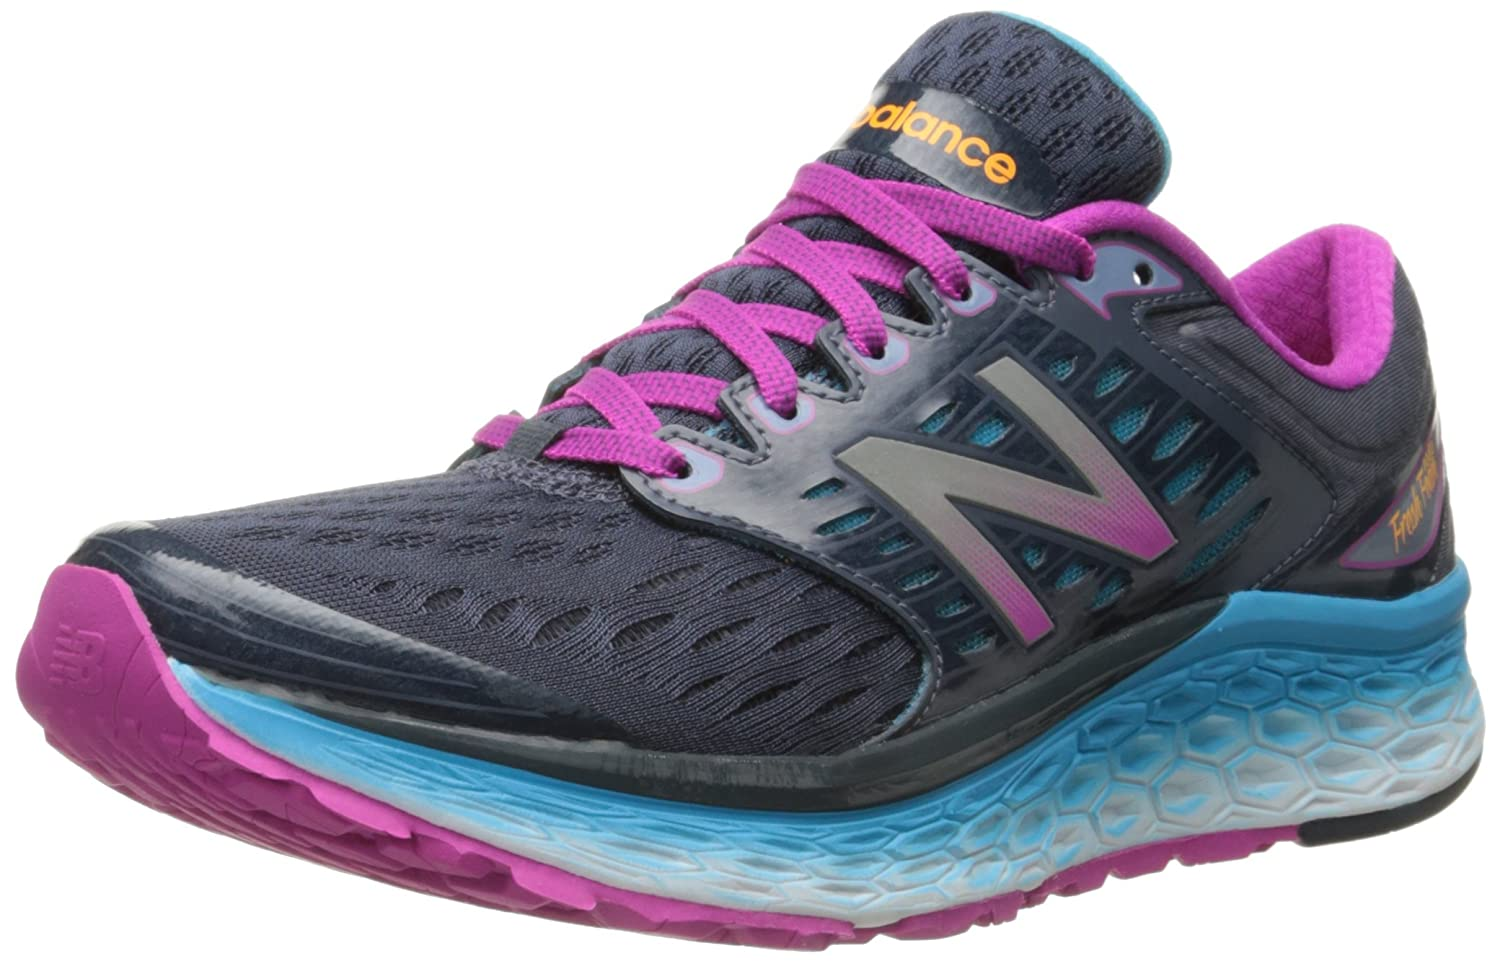 New Balance Women's Fresh Foam 1080v6 Running Shoe B00YVIDAMW 5.5 B(M) US|Blue/Pink